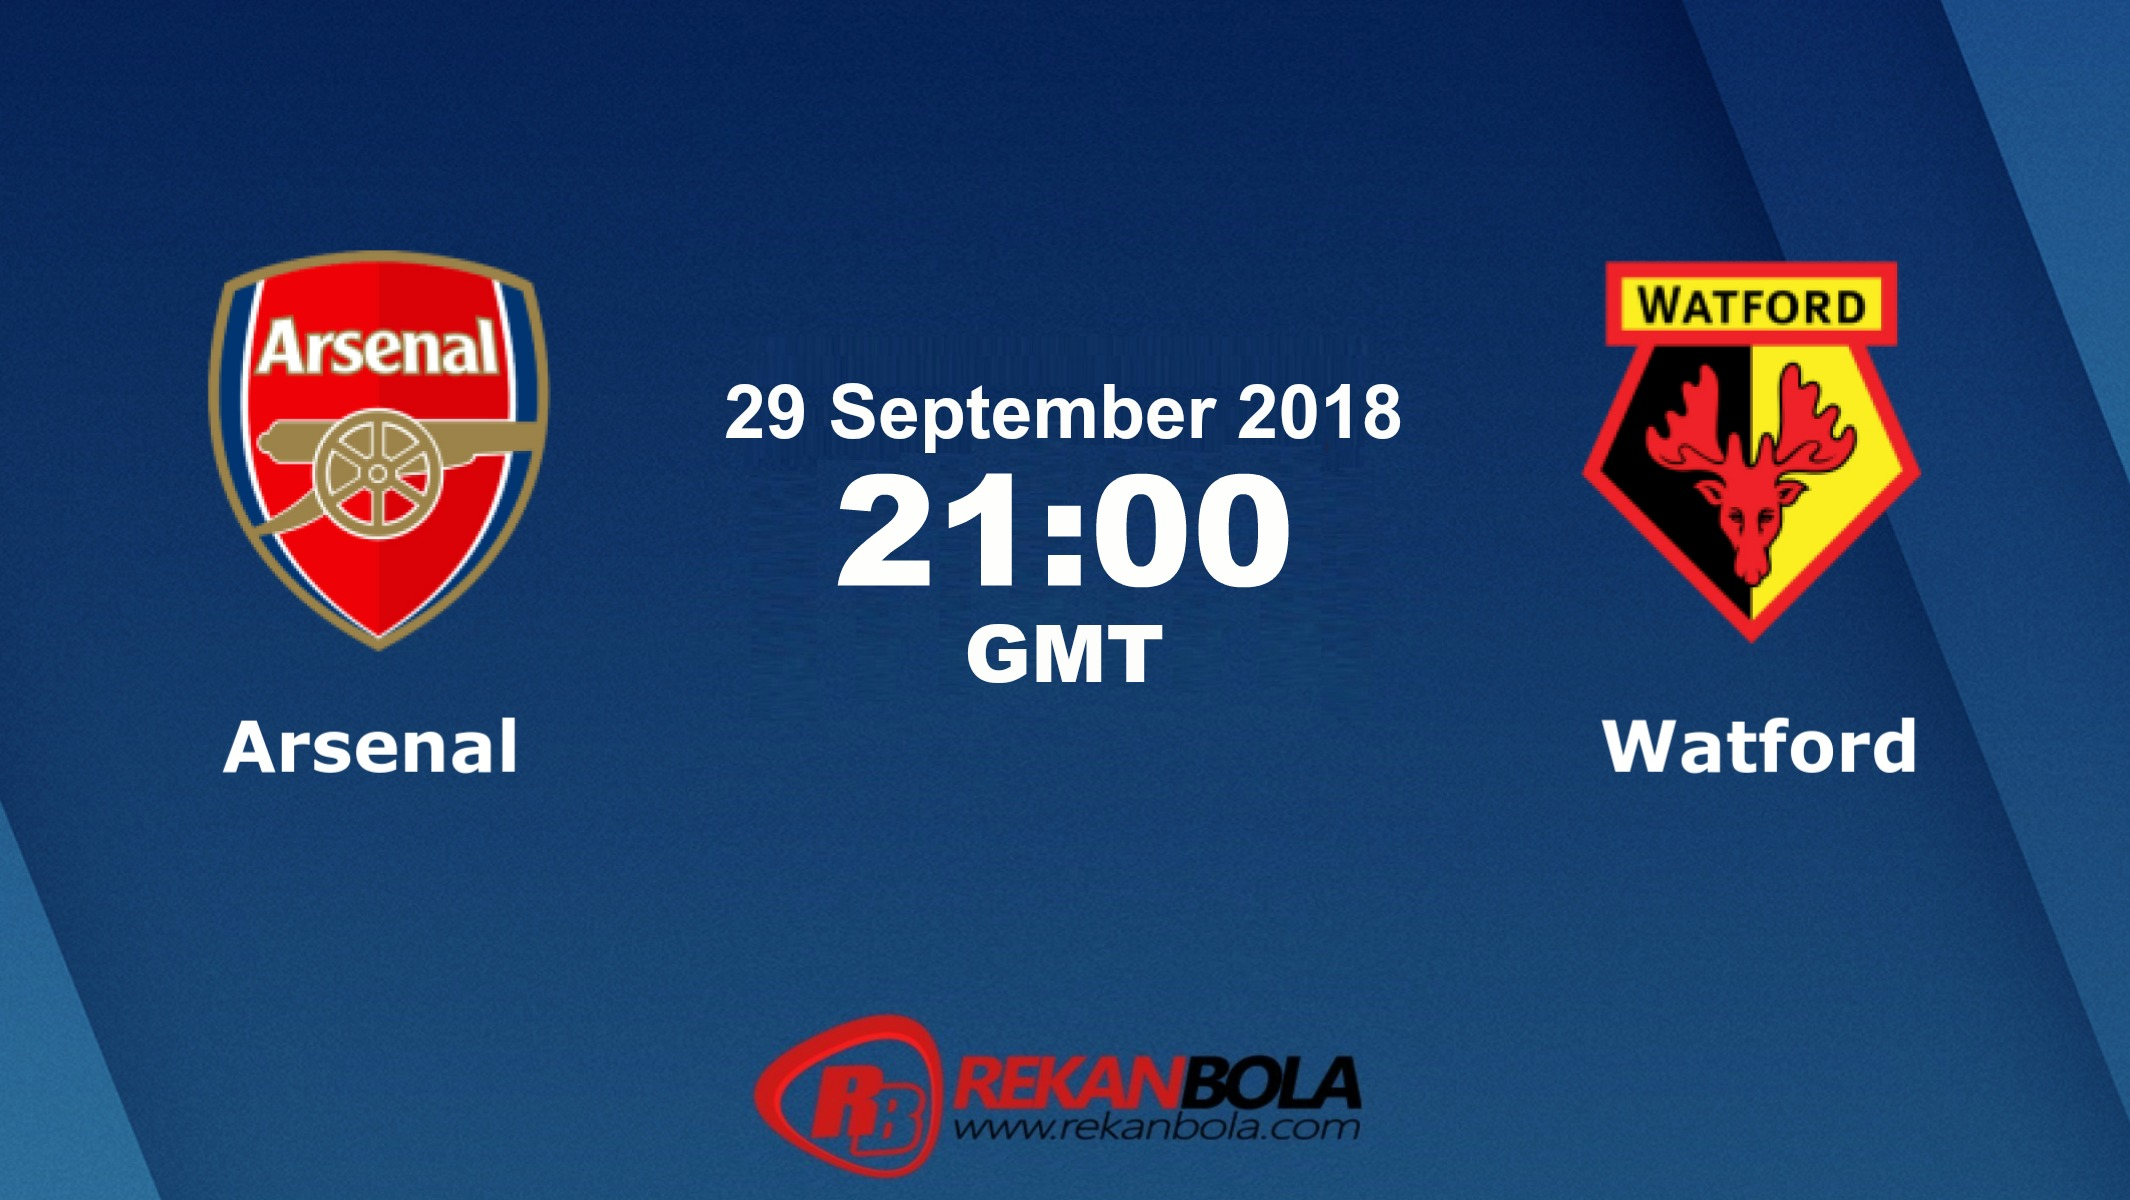 Nonton Siaran Live Streaming Arsenal Vs Watford 29 September 2018